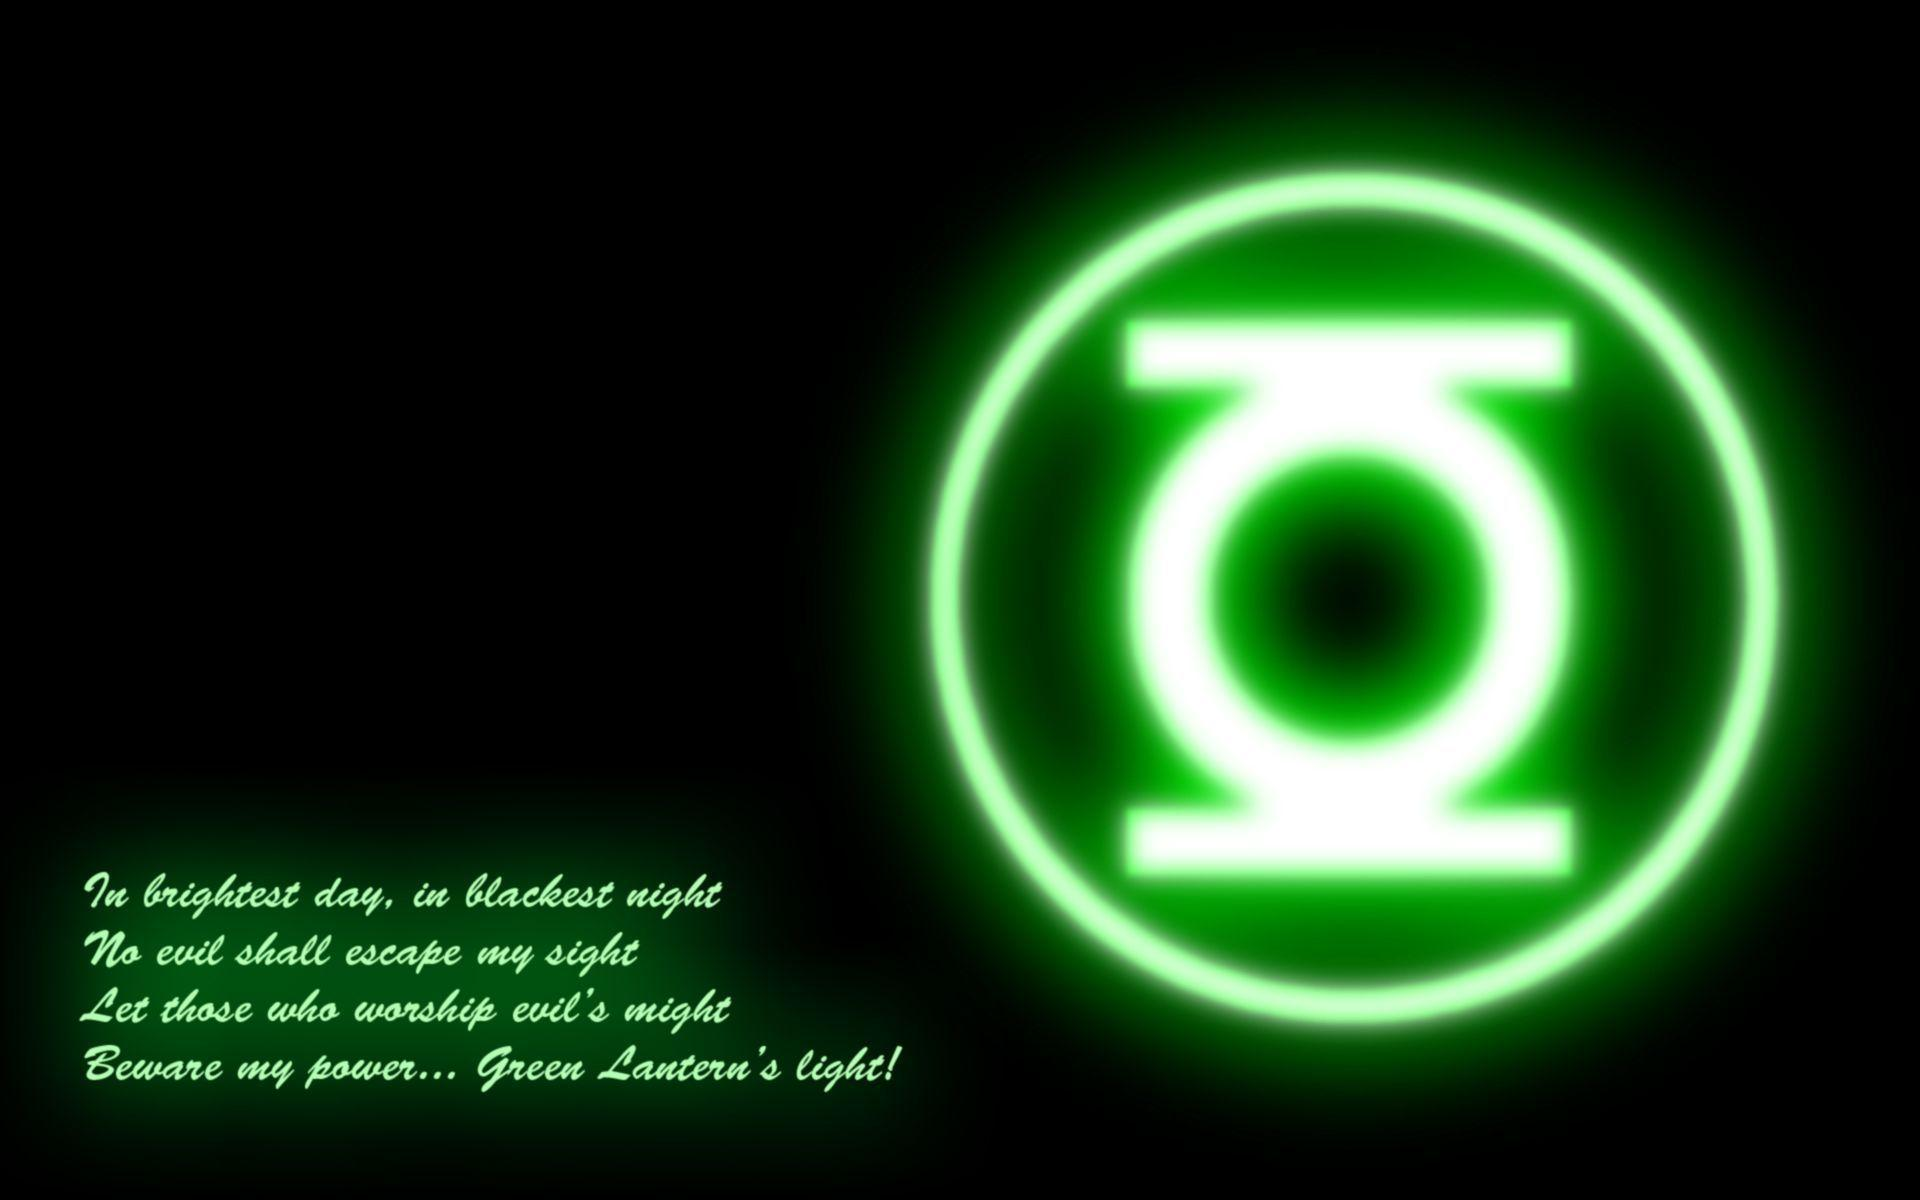 201 Green Lantern Wallpapers